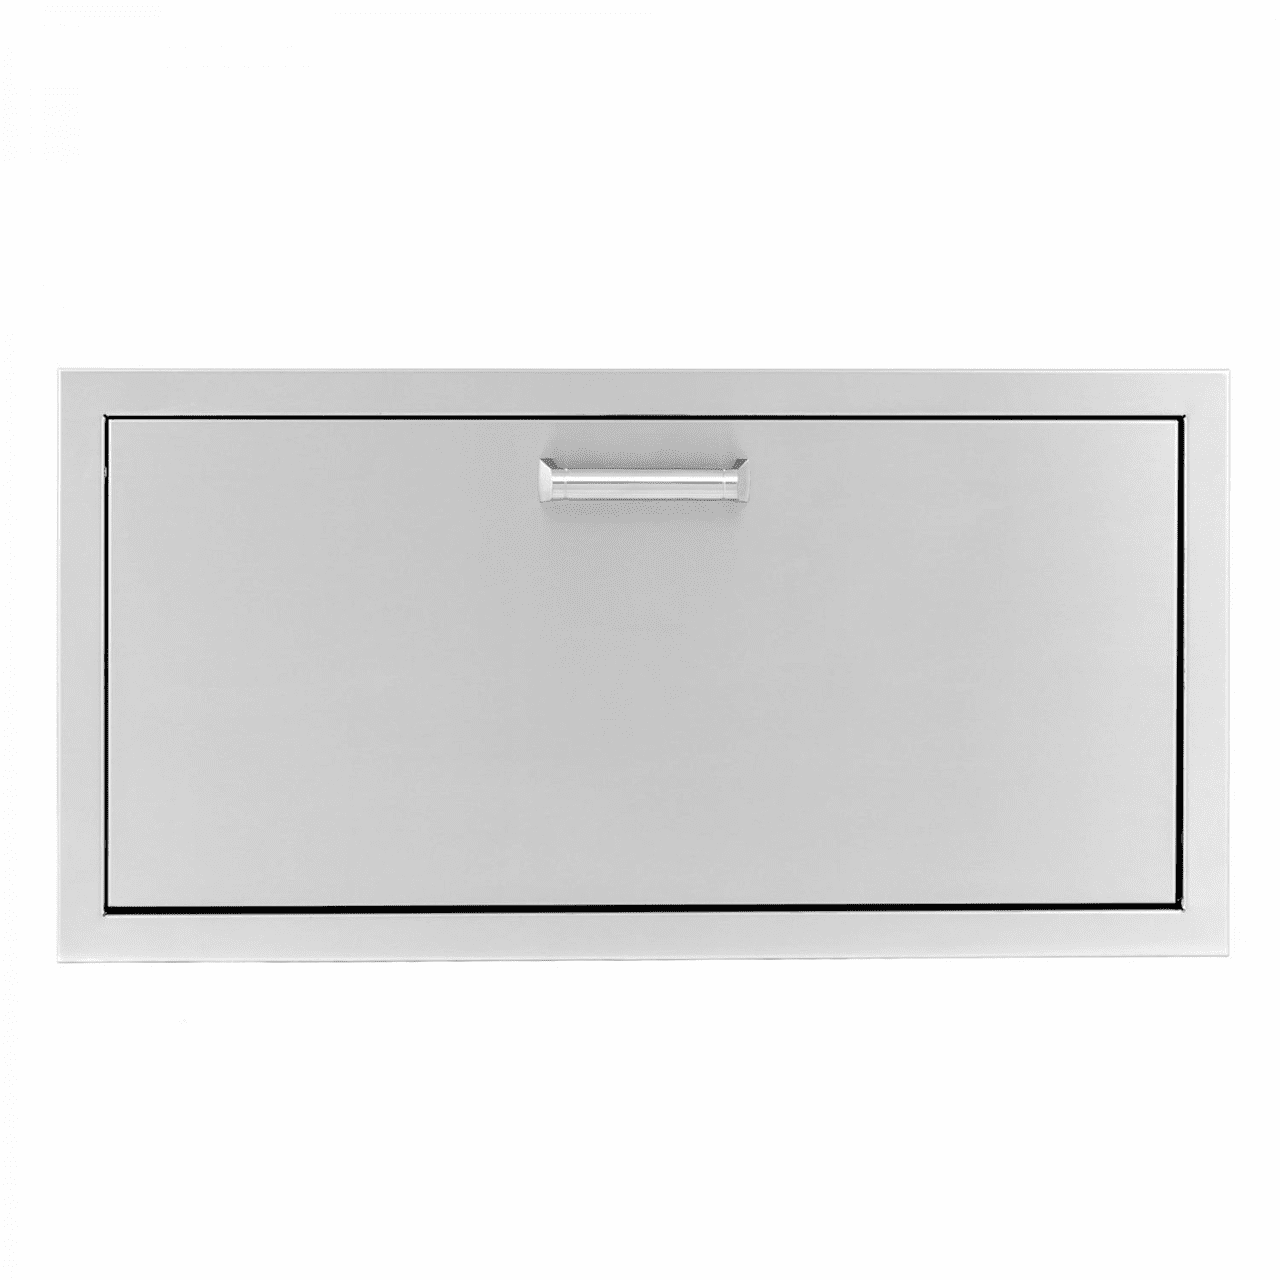 PCM 301H 1 Large Drawer 30 x 115 Stainless 1DR30X15